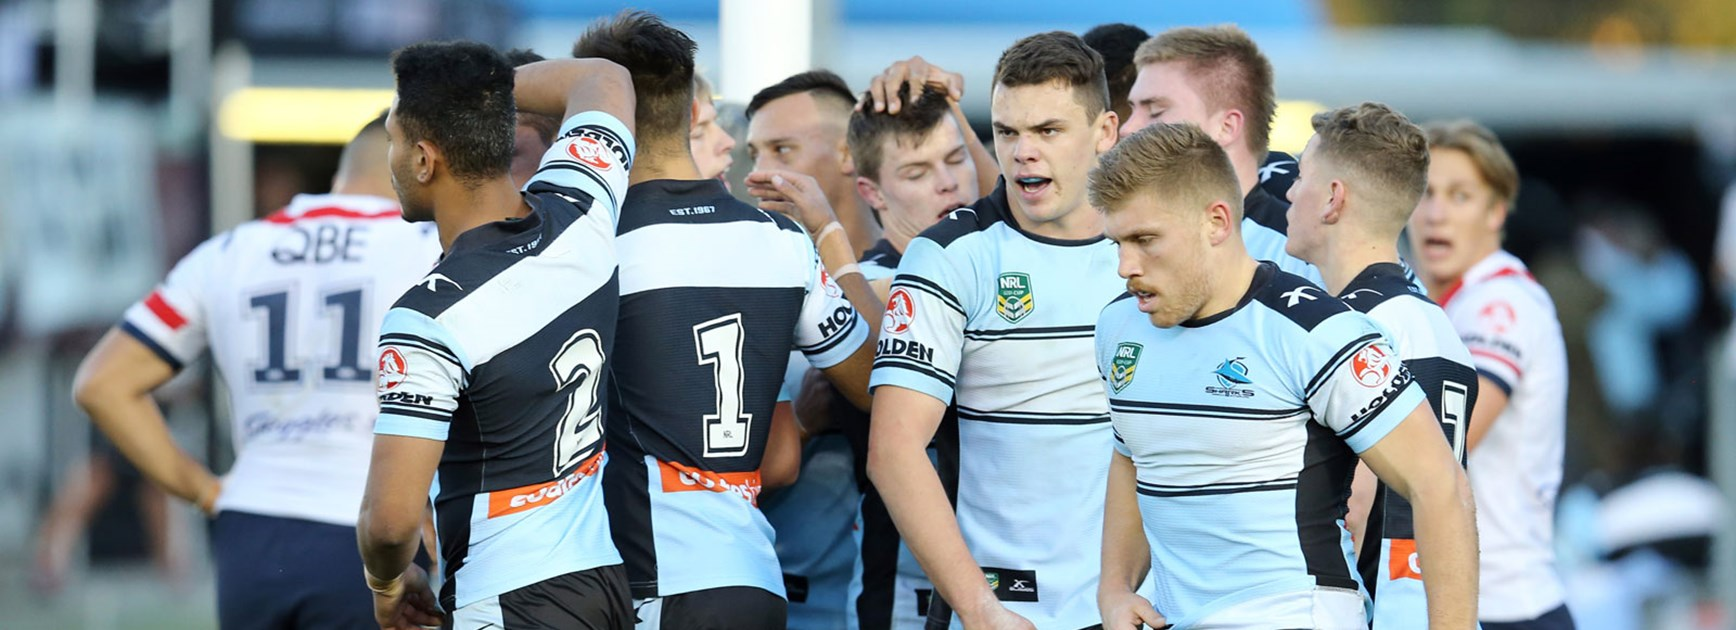 The Sharks NYC side enjoyed a tight victory over the Roosters in Round 25.